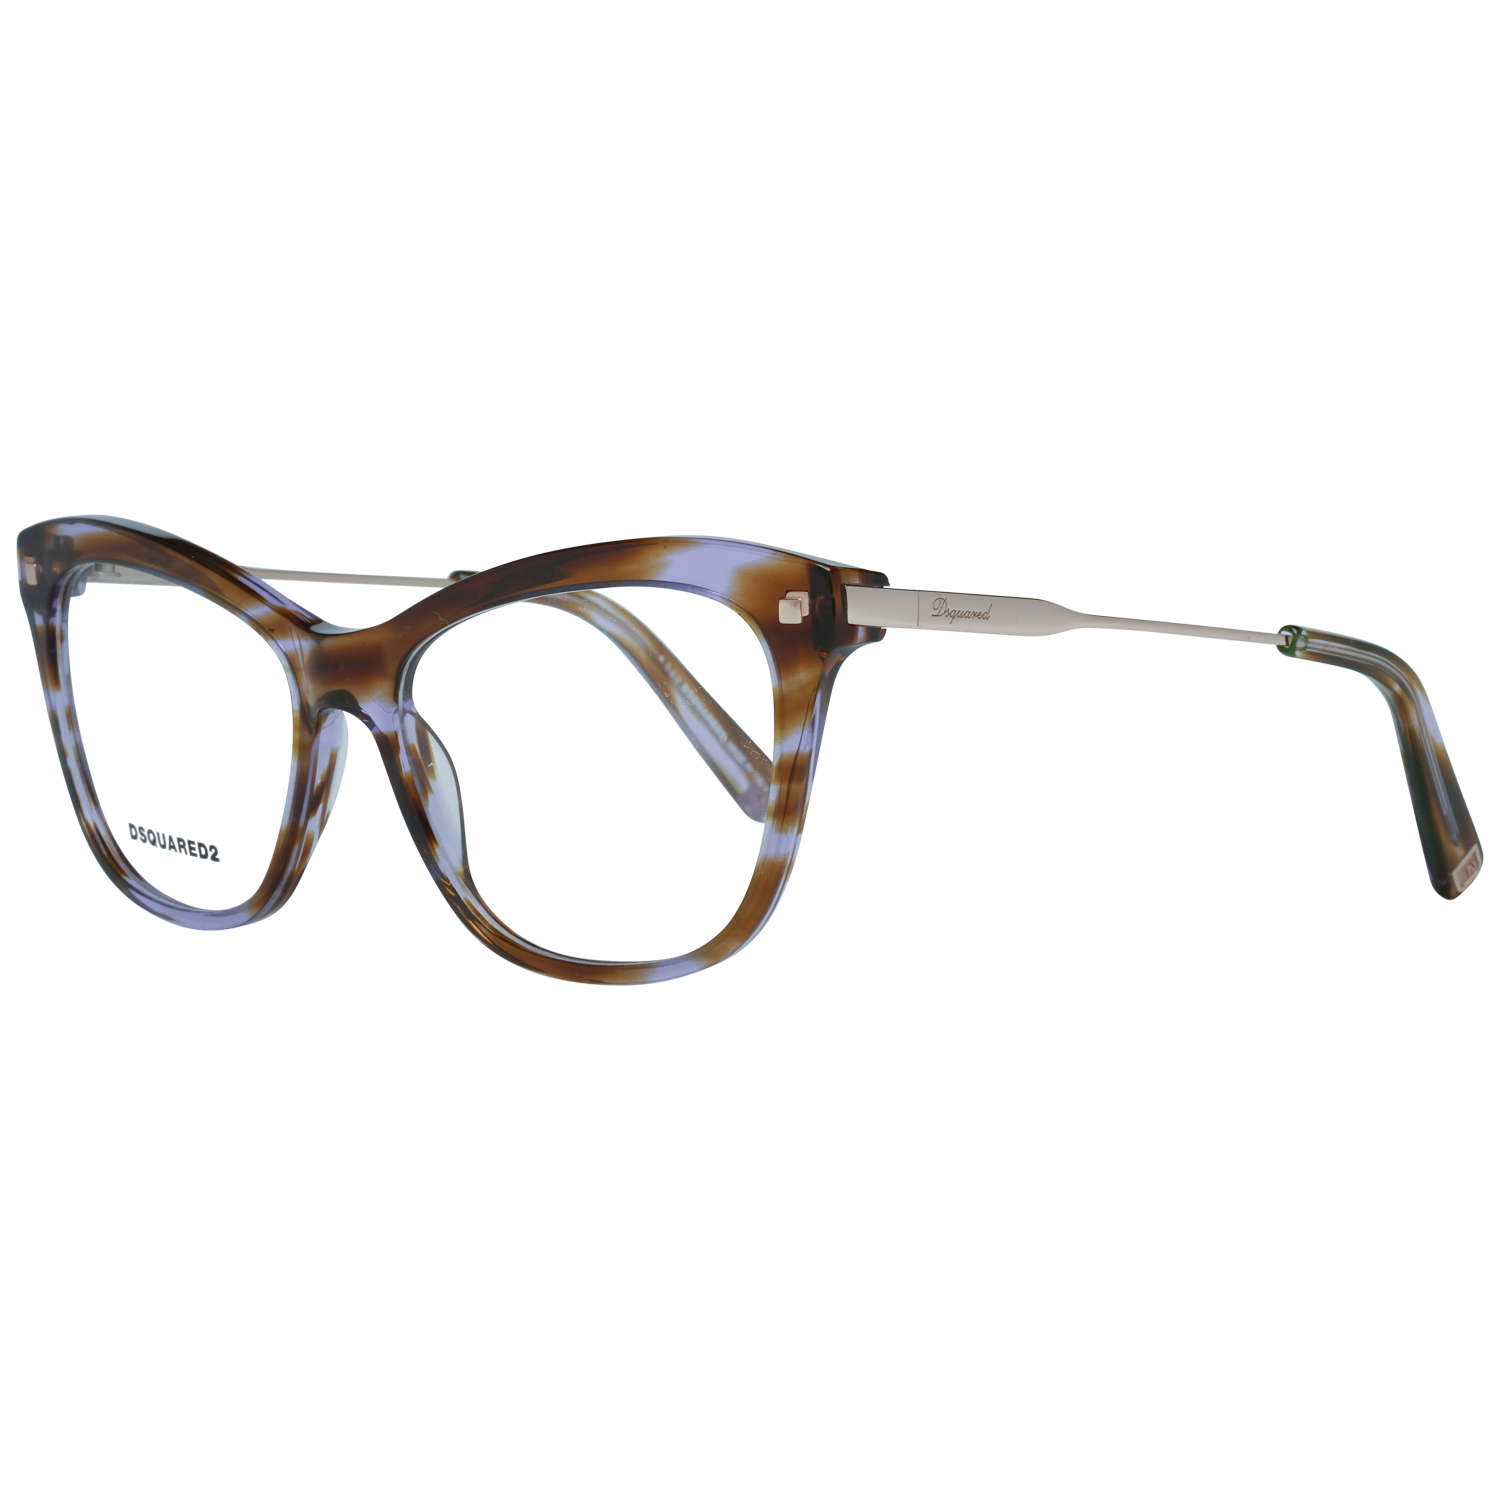 Dsquared2 Optical Frame DQ5194 050 53 Brown